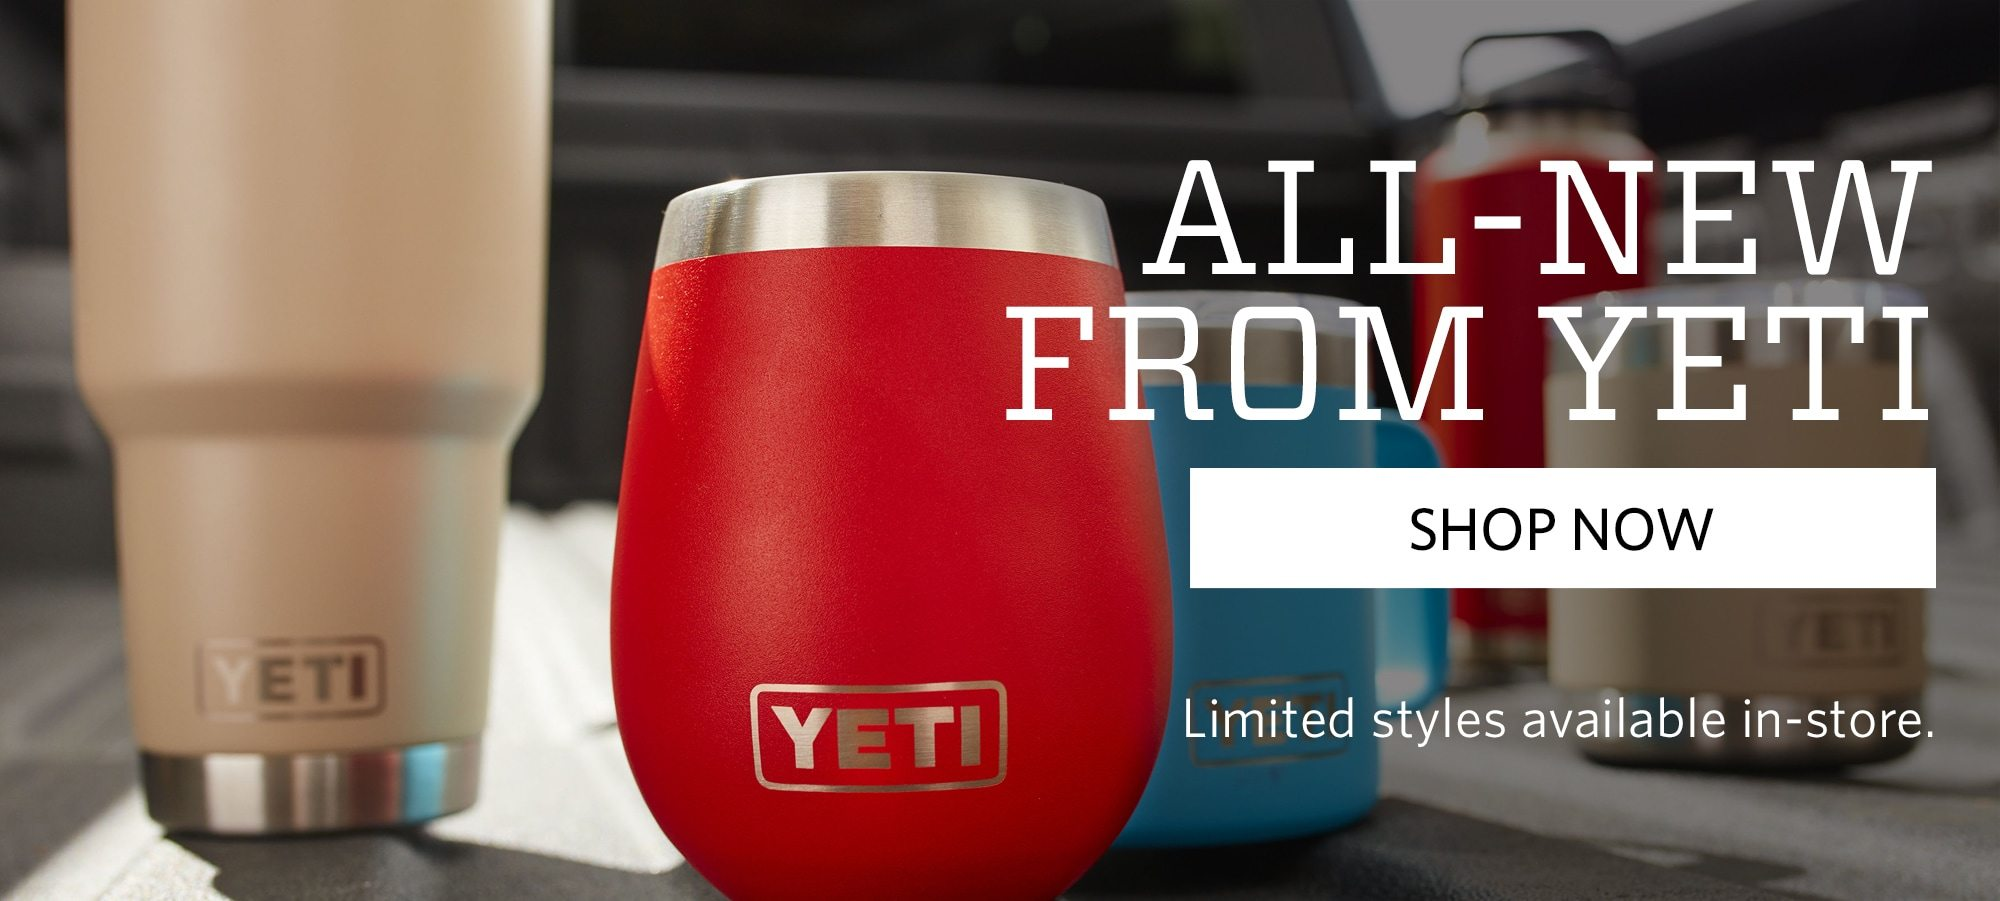 All-New from YETI| Limited styles available in-store. | Shop Now